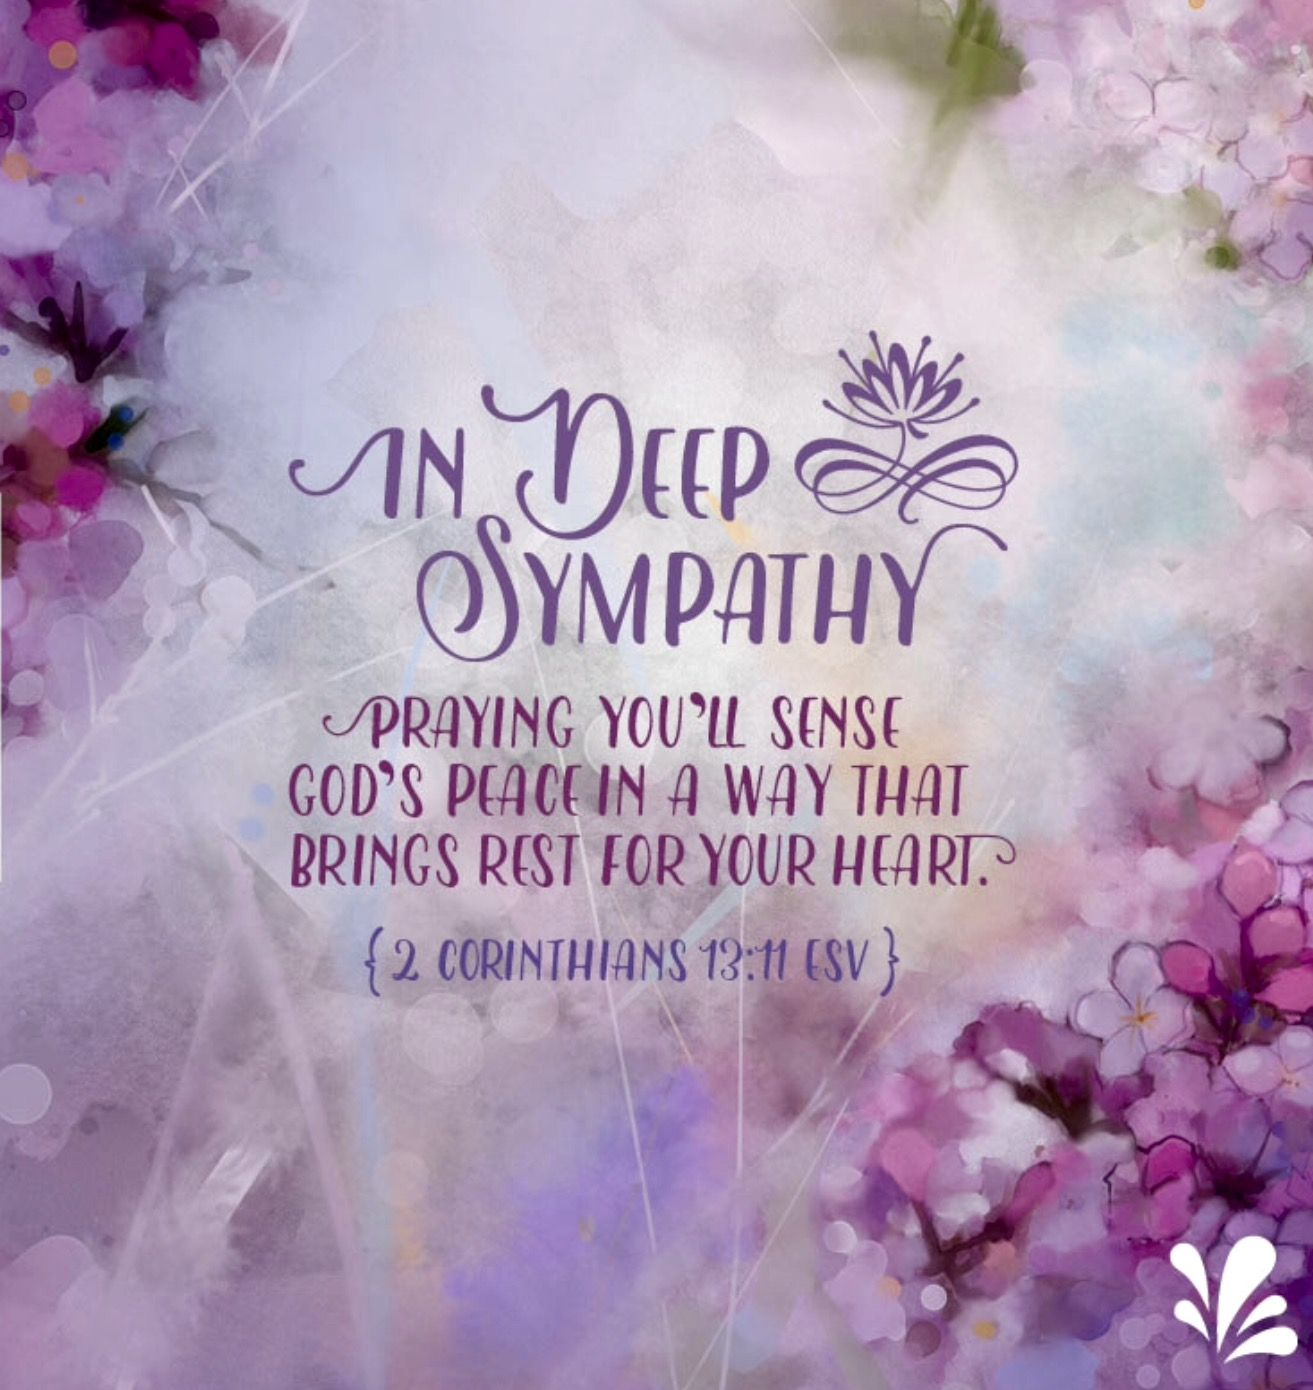 Pin By Dulce Trinidad On In Sympathy Pinterest